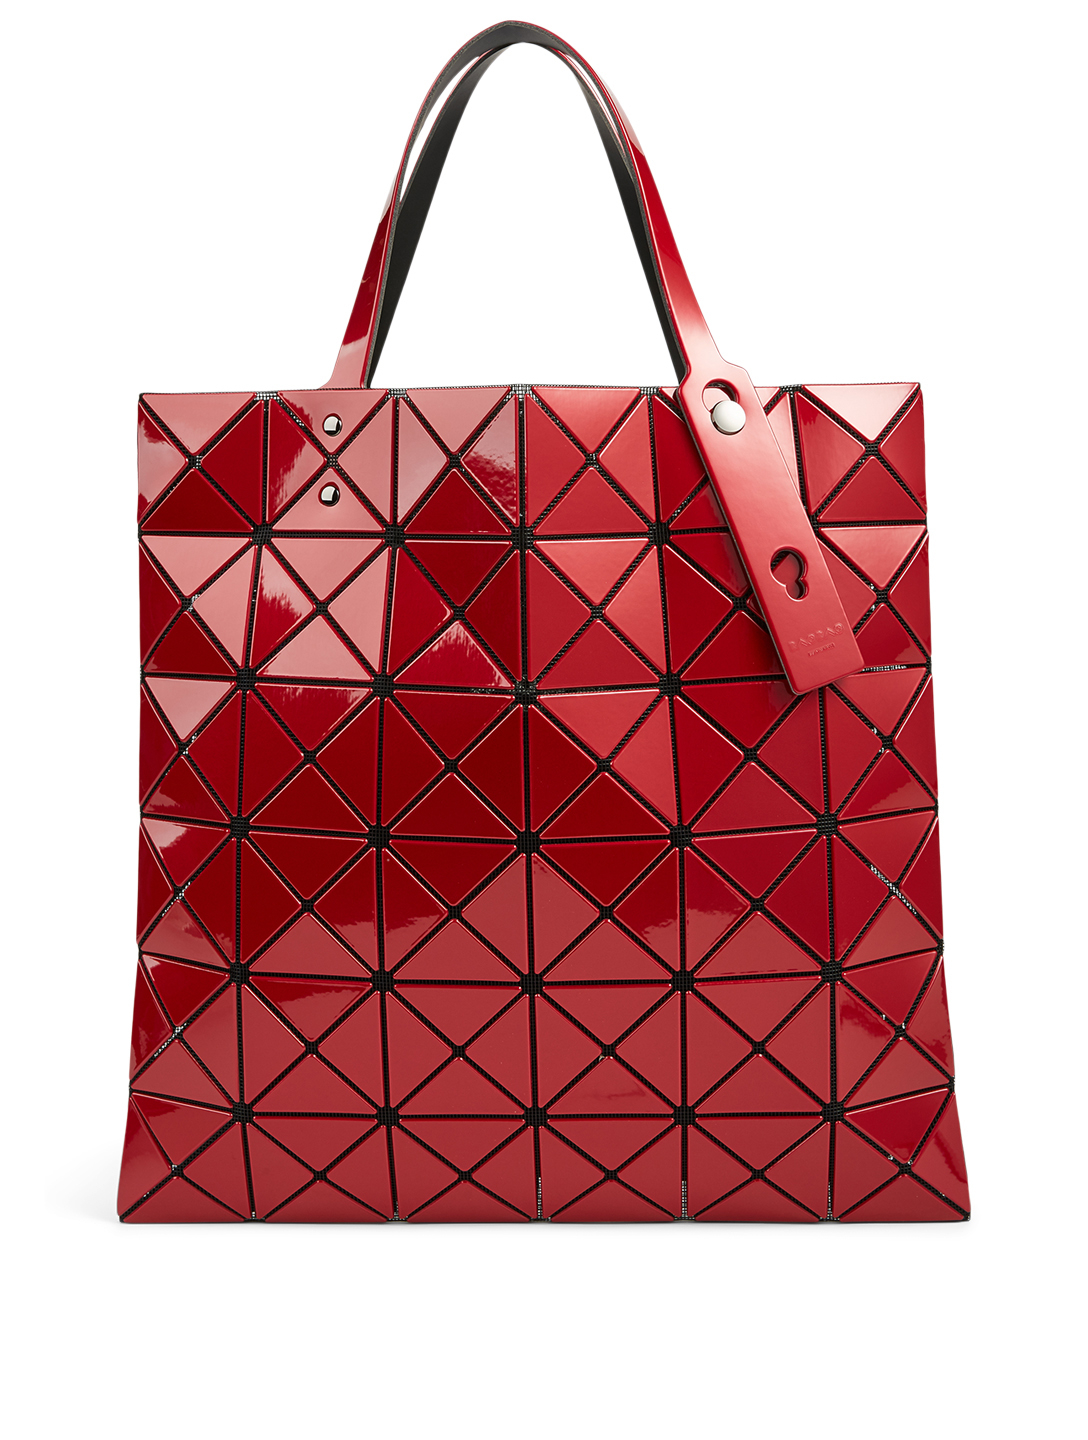 BAO BAO ISSEY MIYAKE Lucent Metallic Tote Bag Women's Red